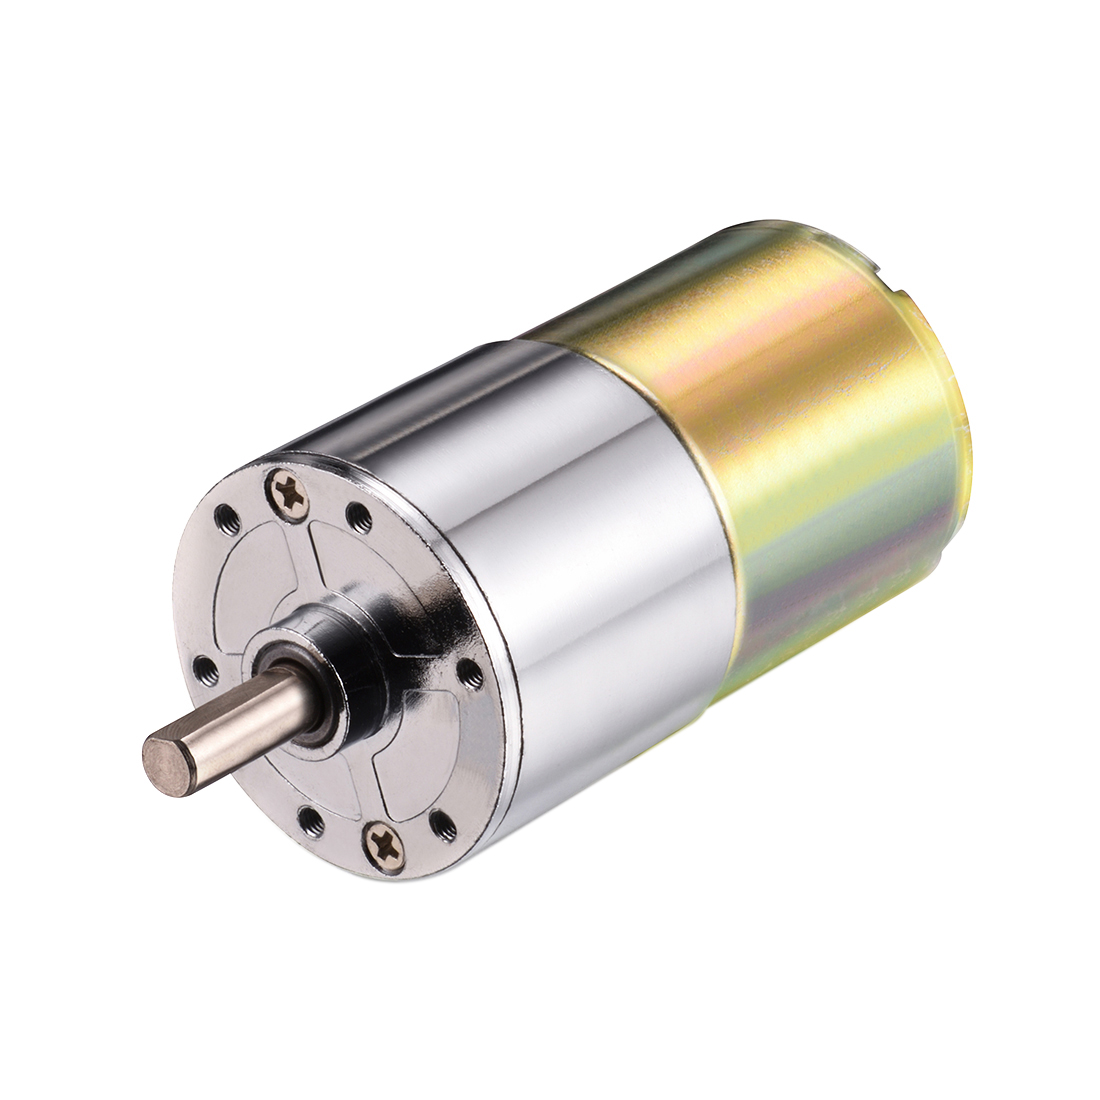 DC 24V 60RPM Micro Gear Box Motor Speed Reduction Electric Gearbox Centric Output Shaft